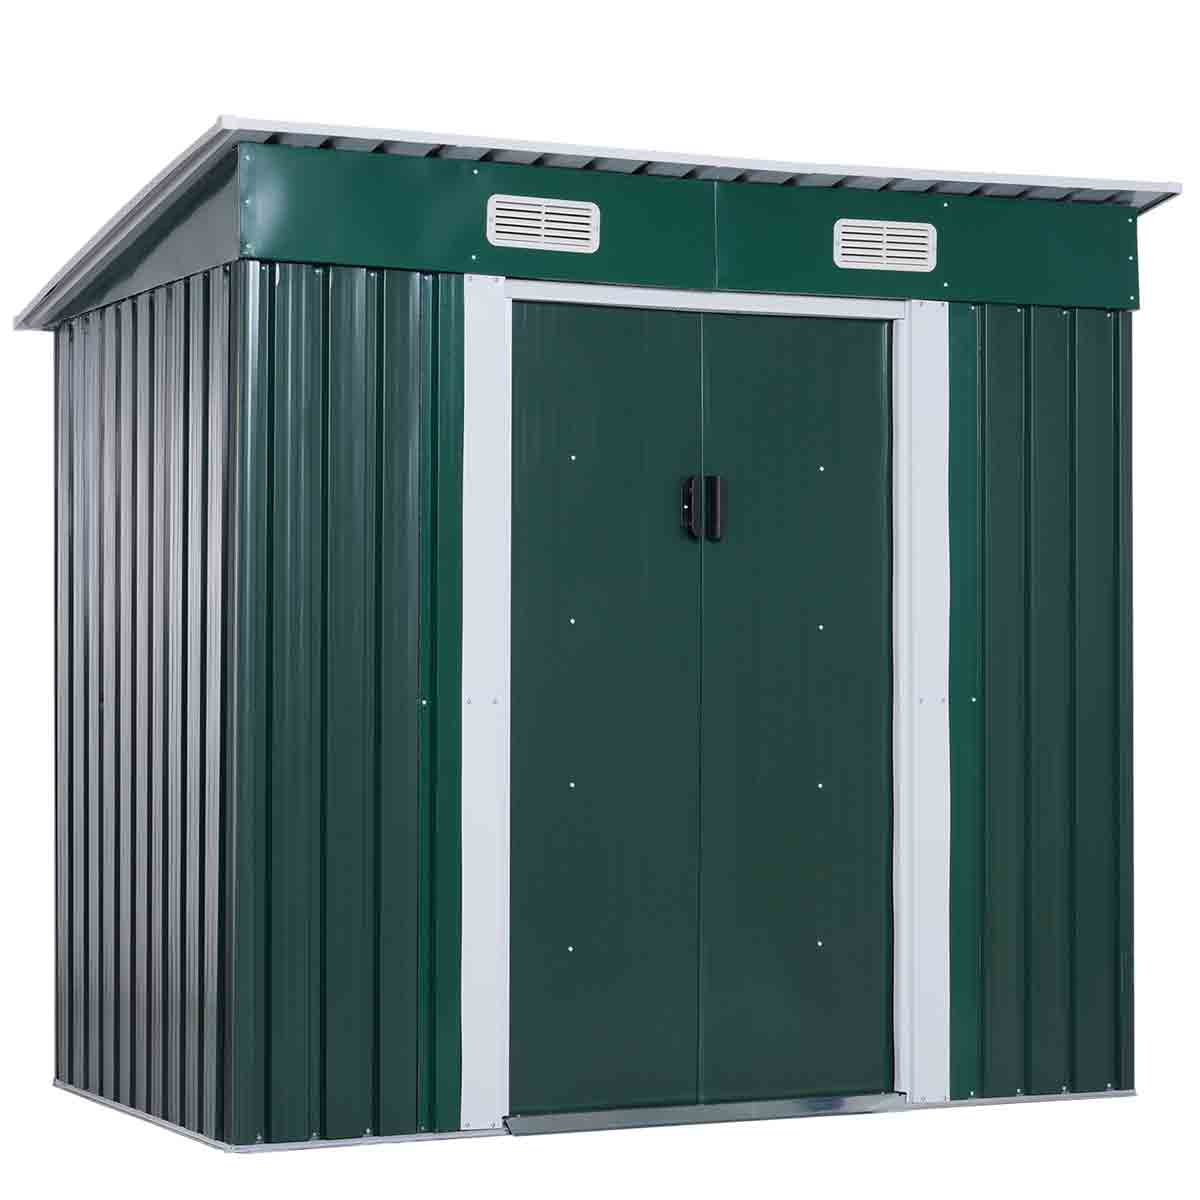 Outsunny 6' x 3' 6'' Metal Lockable Pent Storage Shed - Green